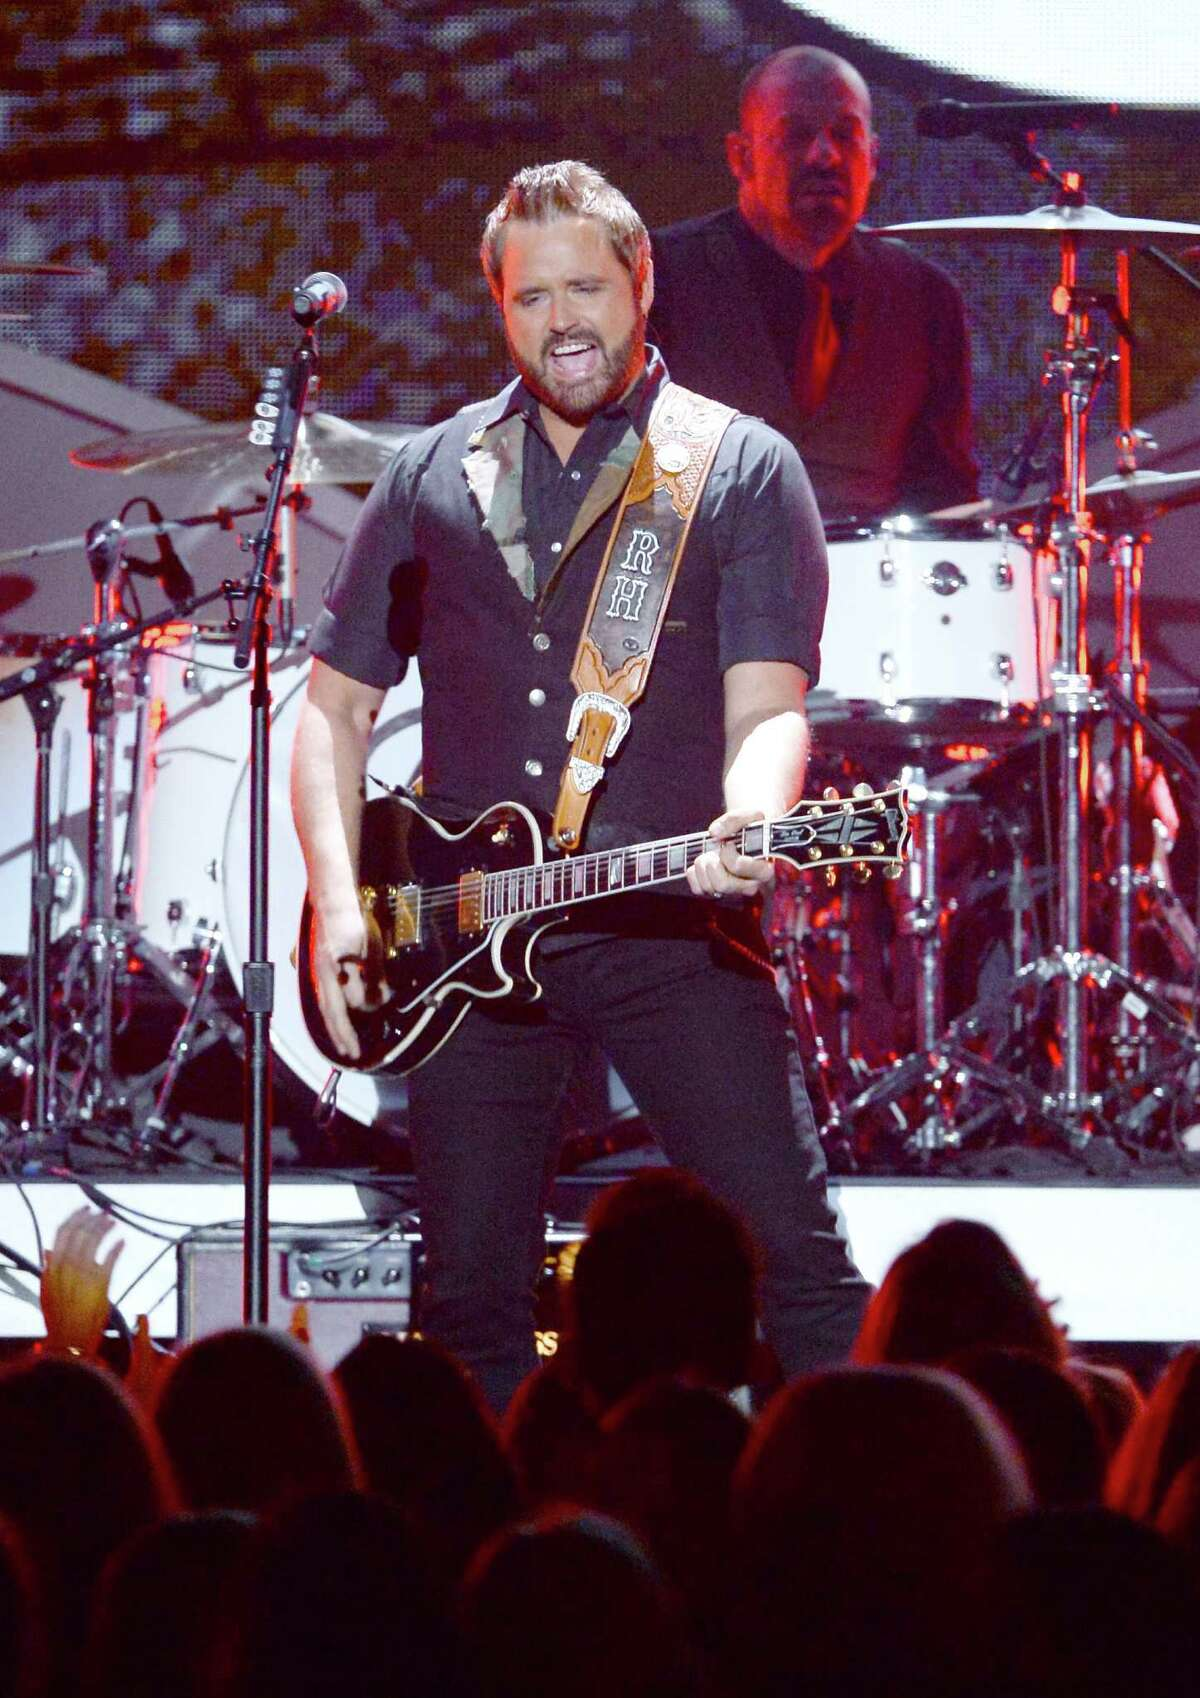 Randy Houser will play the rodeo on Feb. 23.